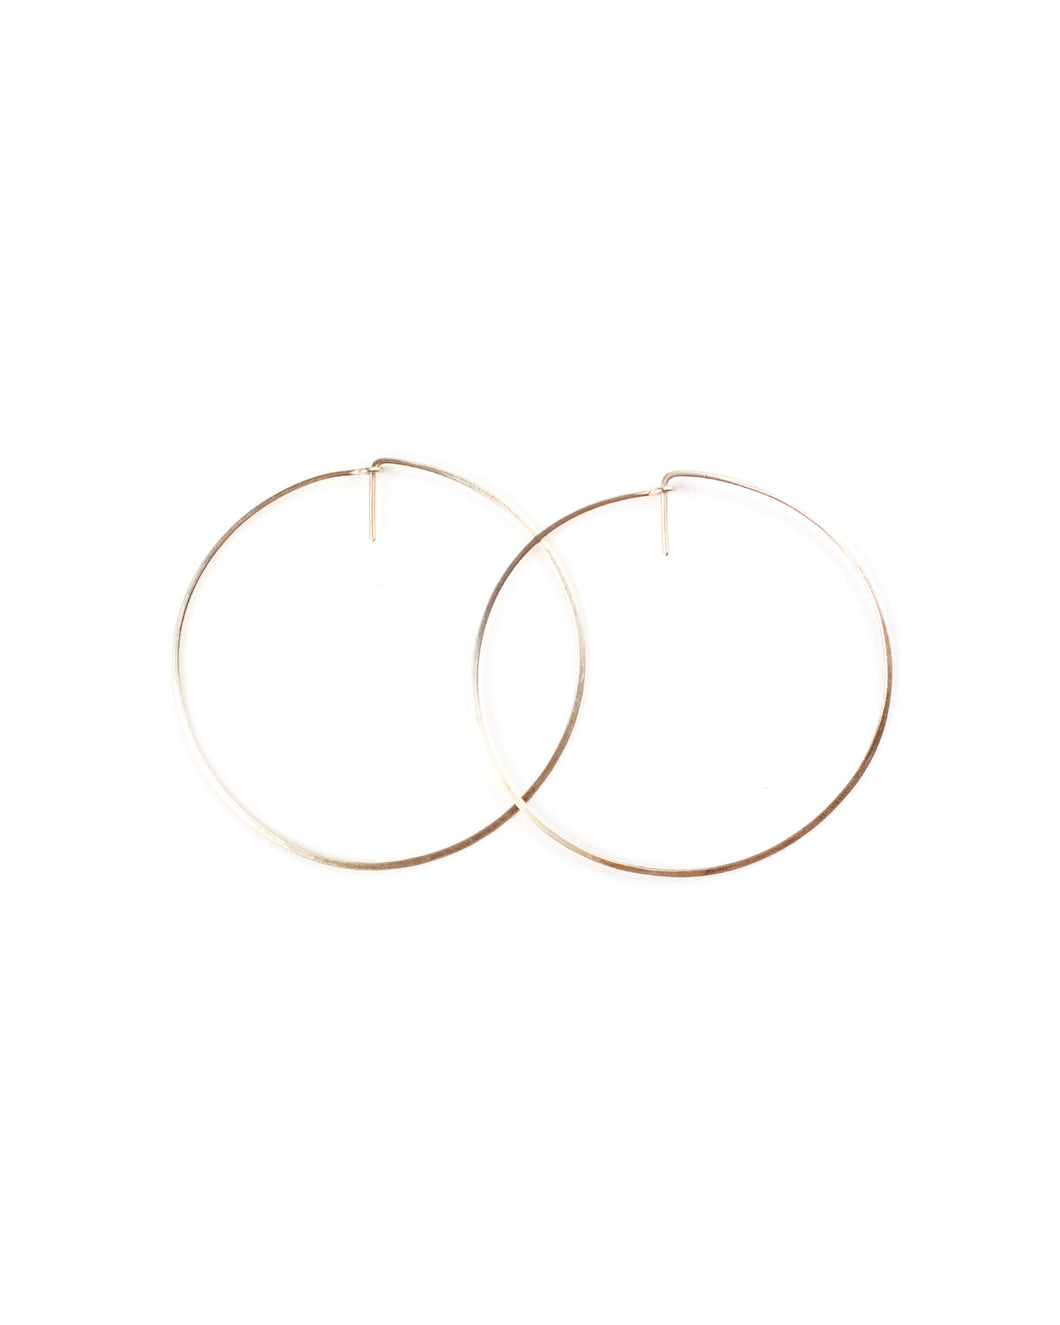 Deco Hoop (gold)- Large